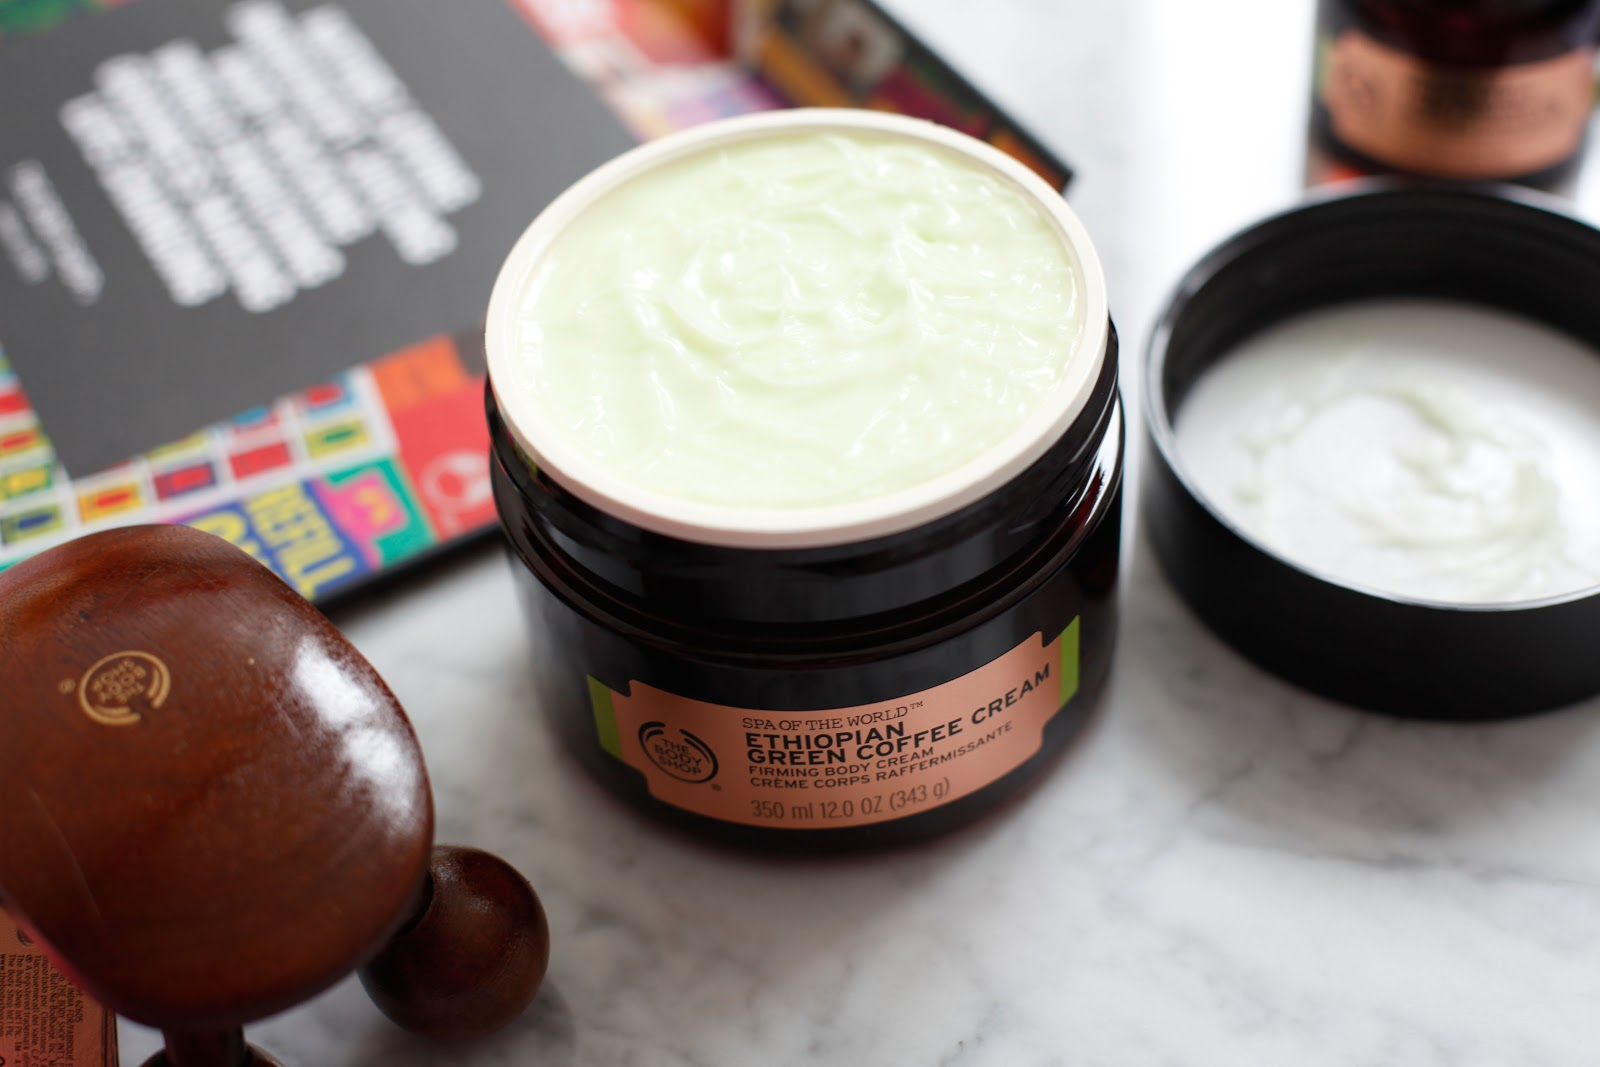 iu0027m a big fan of the body shop body butters and this one is perfect for summer ethiopian green coffee cream has slightly different texture it feels light